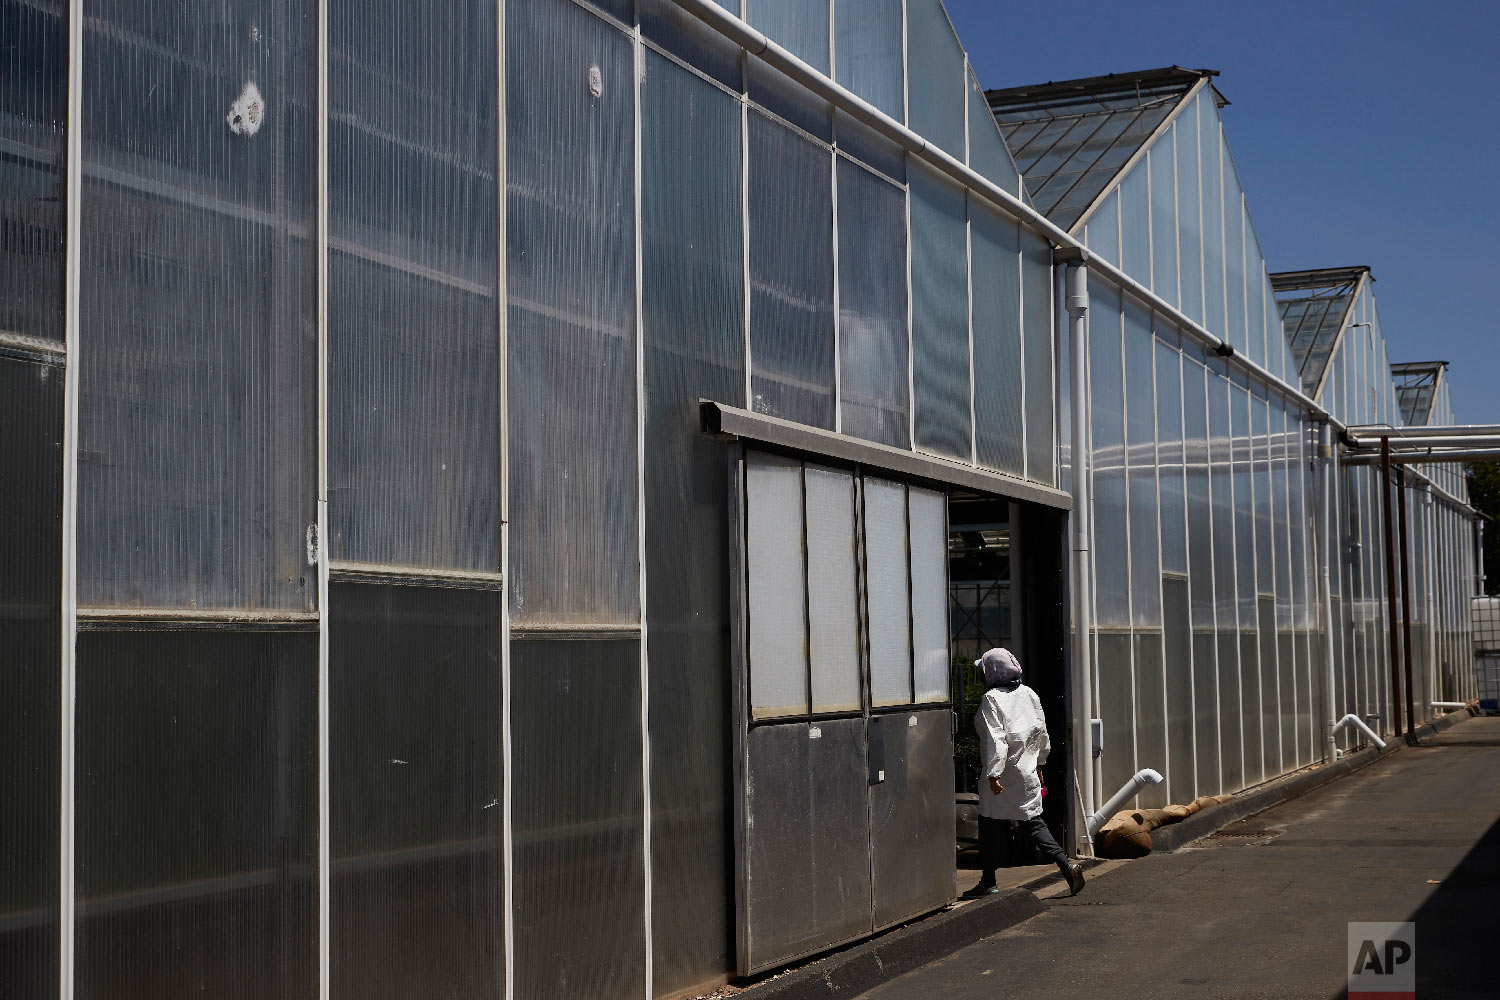 A worker walks into a greenhouse growing cannabis plants at Glass House Farms Thursday, April 12, 2018, in Carpinteria, Calif. Greenhouses that once produced flowers are seen as ideal for growing marijuana. In a climate like Carpinteria's, they heat and cool easily and inexpensively, and the plants thrive. It takes only about three months to grow cannabis in pots of shredded coconut husks, so farmers can get multiple harvests each year. (AP Photo/Jae C. Hong)